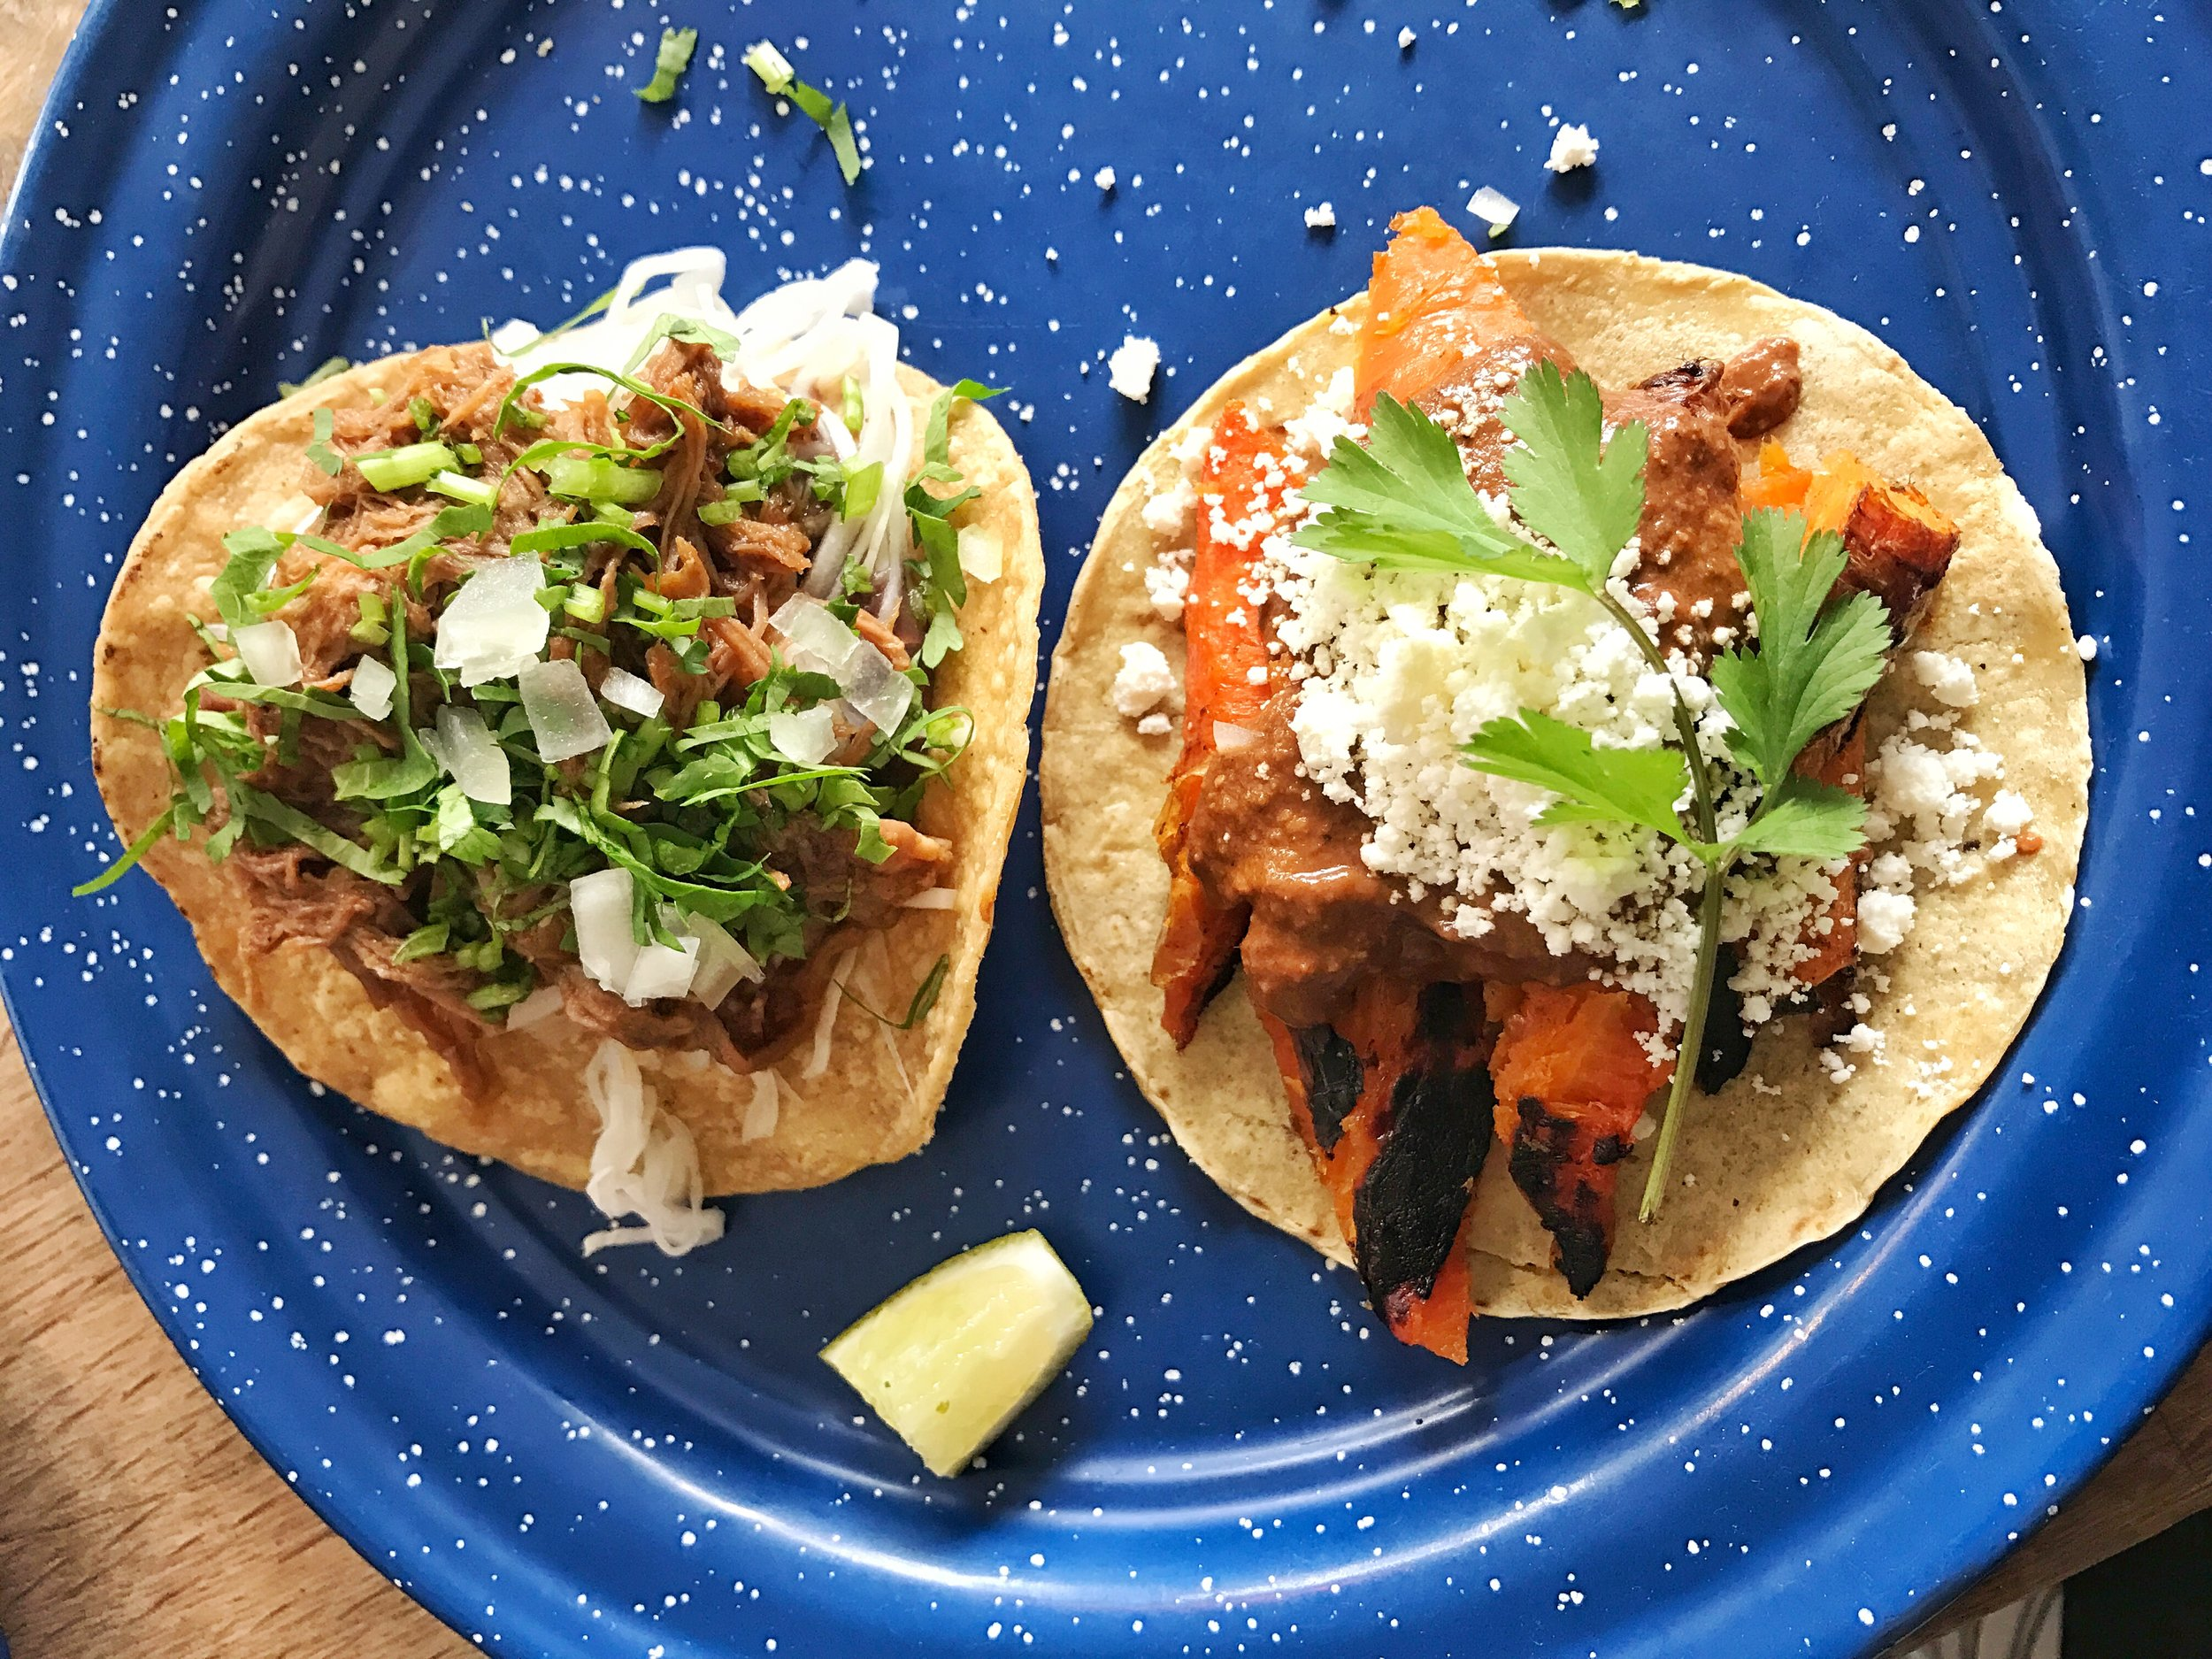 Short rib taco and carrot taco- The short rib tacos were well seasoned and tasty but the roasted carrot taco with mole sauce and cotija cheese was the star. You'll forget you're eating vegetables.